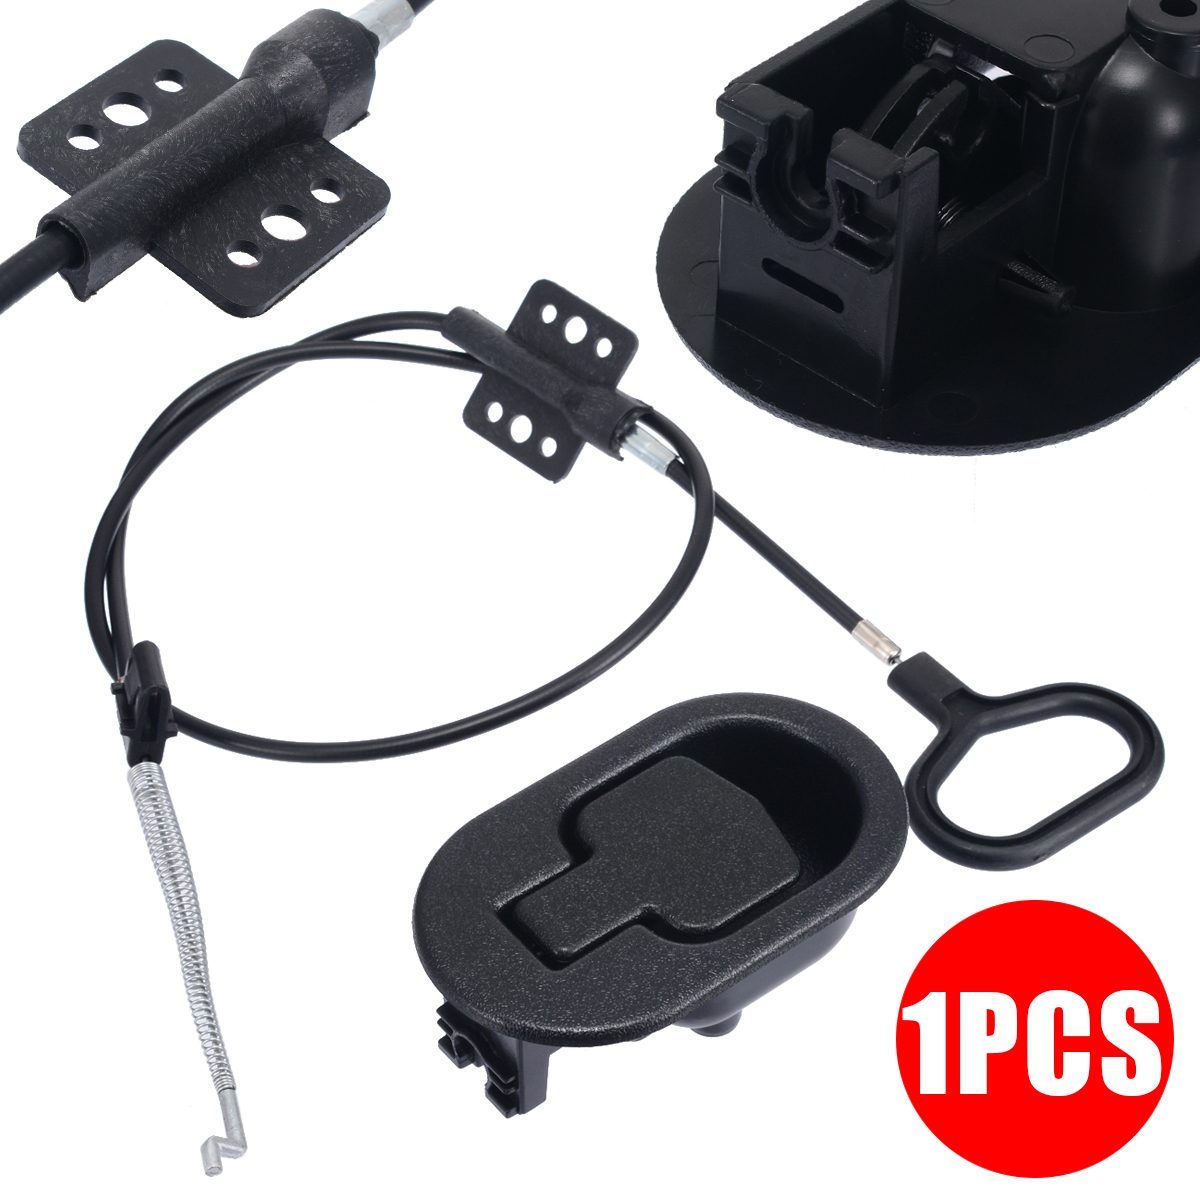 1set Black Sofa Chair Recliner Release Handle Pressure Bar Pull Cable Chair Metal + Switch Wire